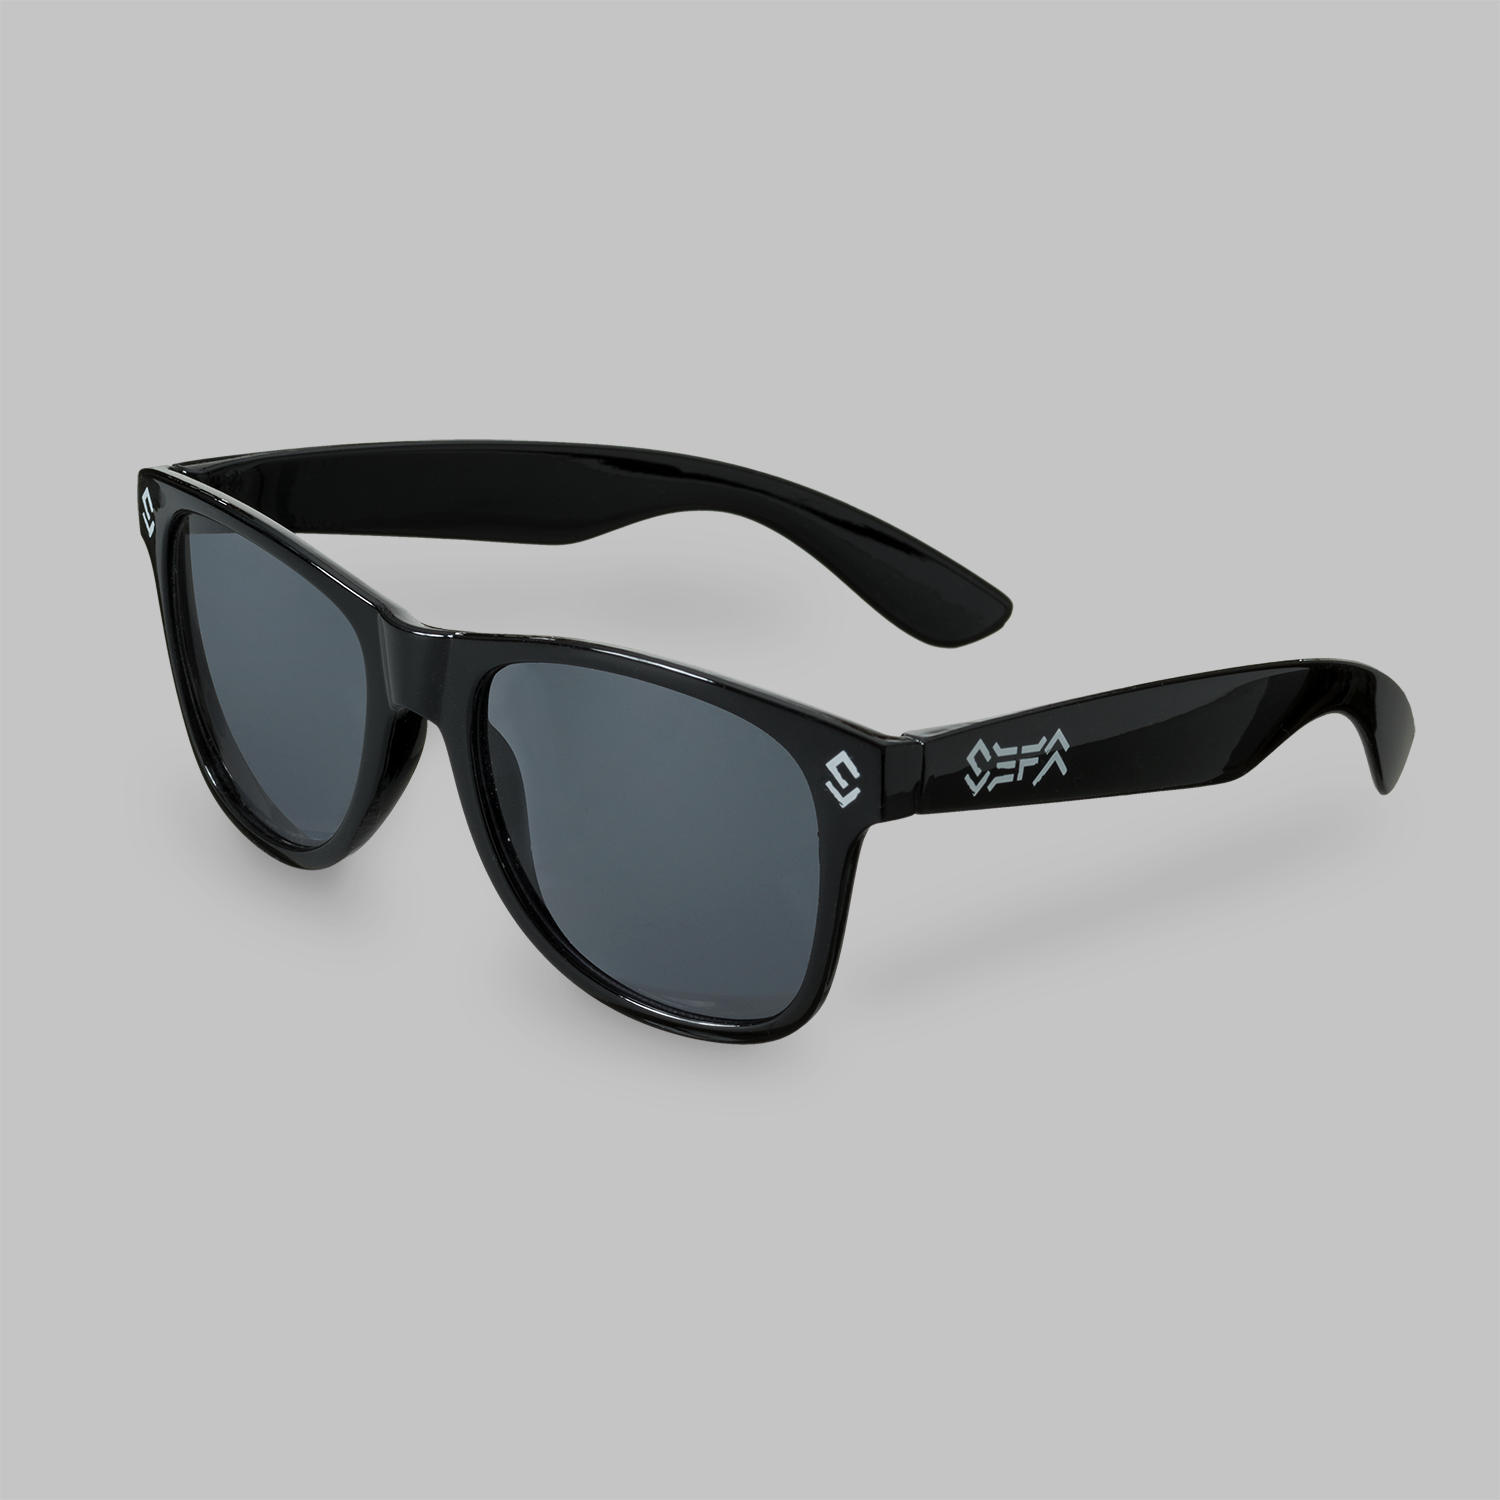 Sefa sunglasses black-1